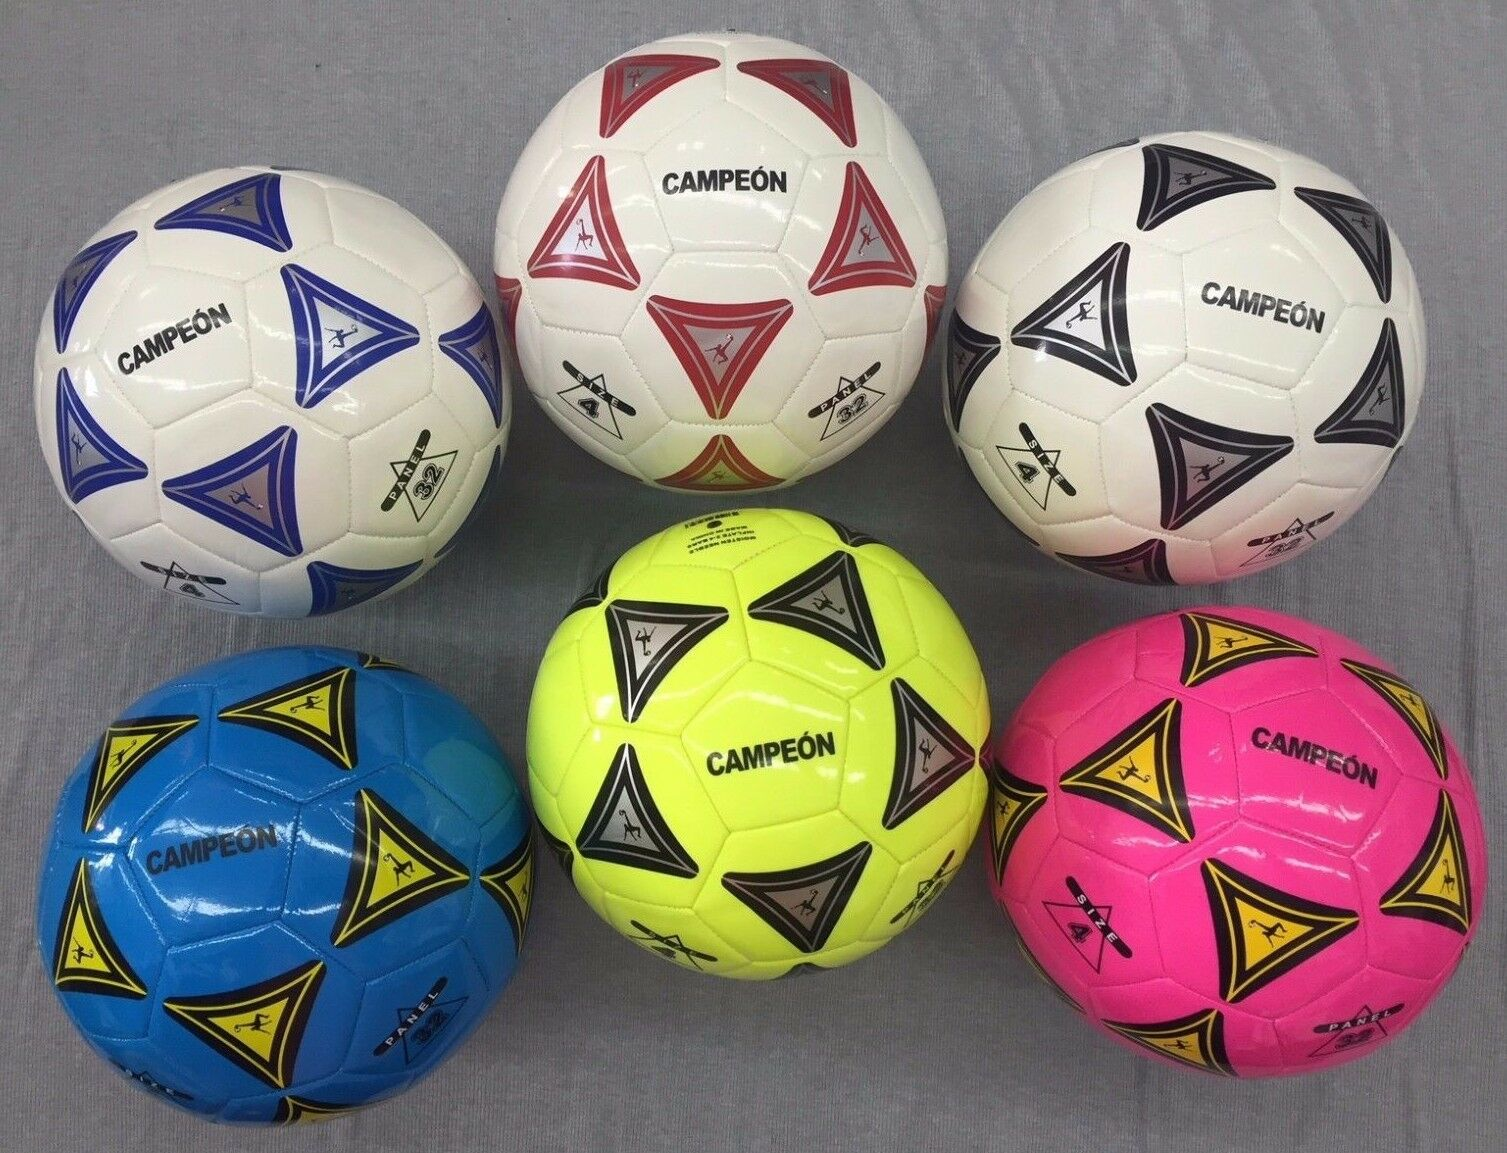 Lot Of Of Lot 50 Soccer Ball Official Größe 4 & Weight 32 Panels Good For Practice b7a930